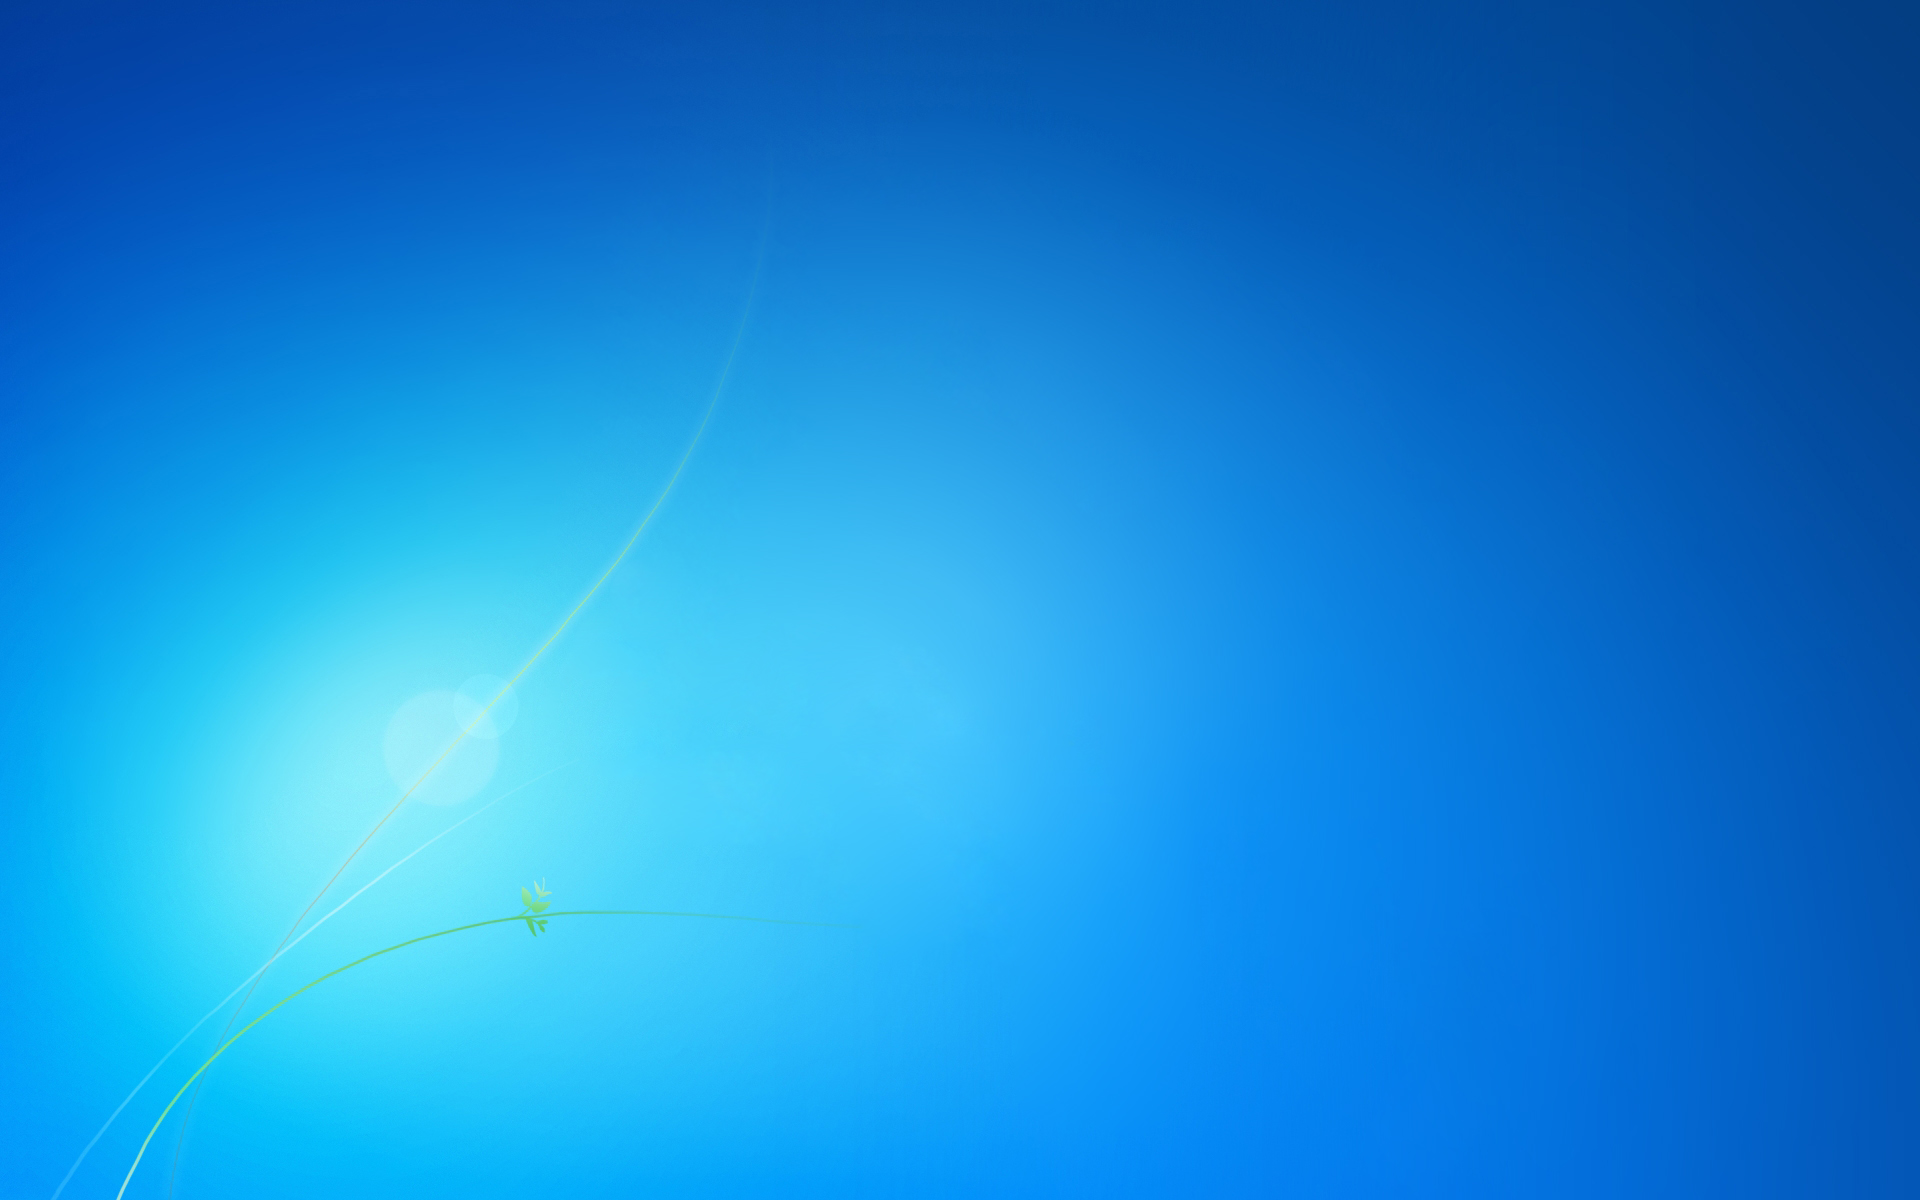 Windows 7 Blue